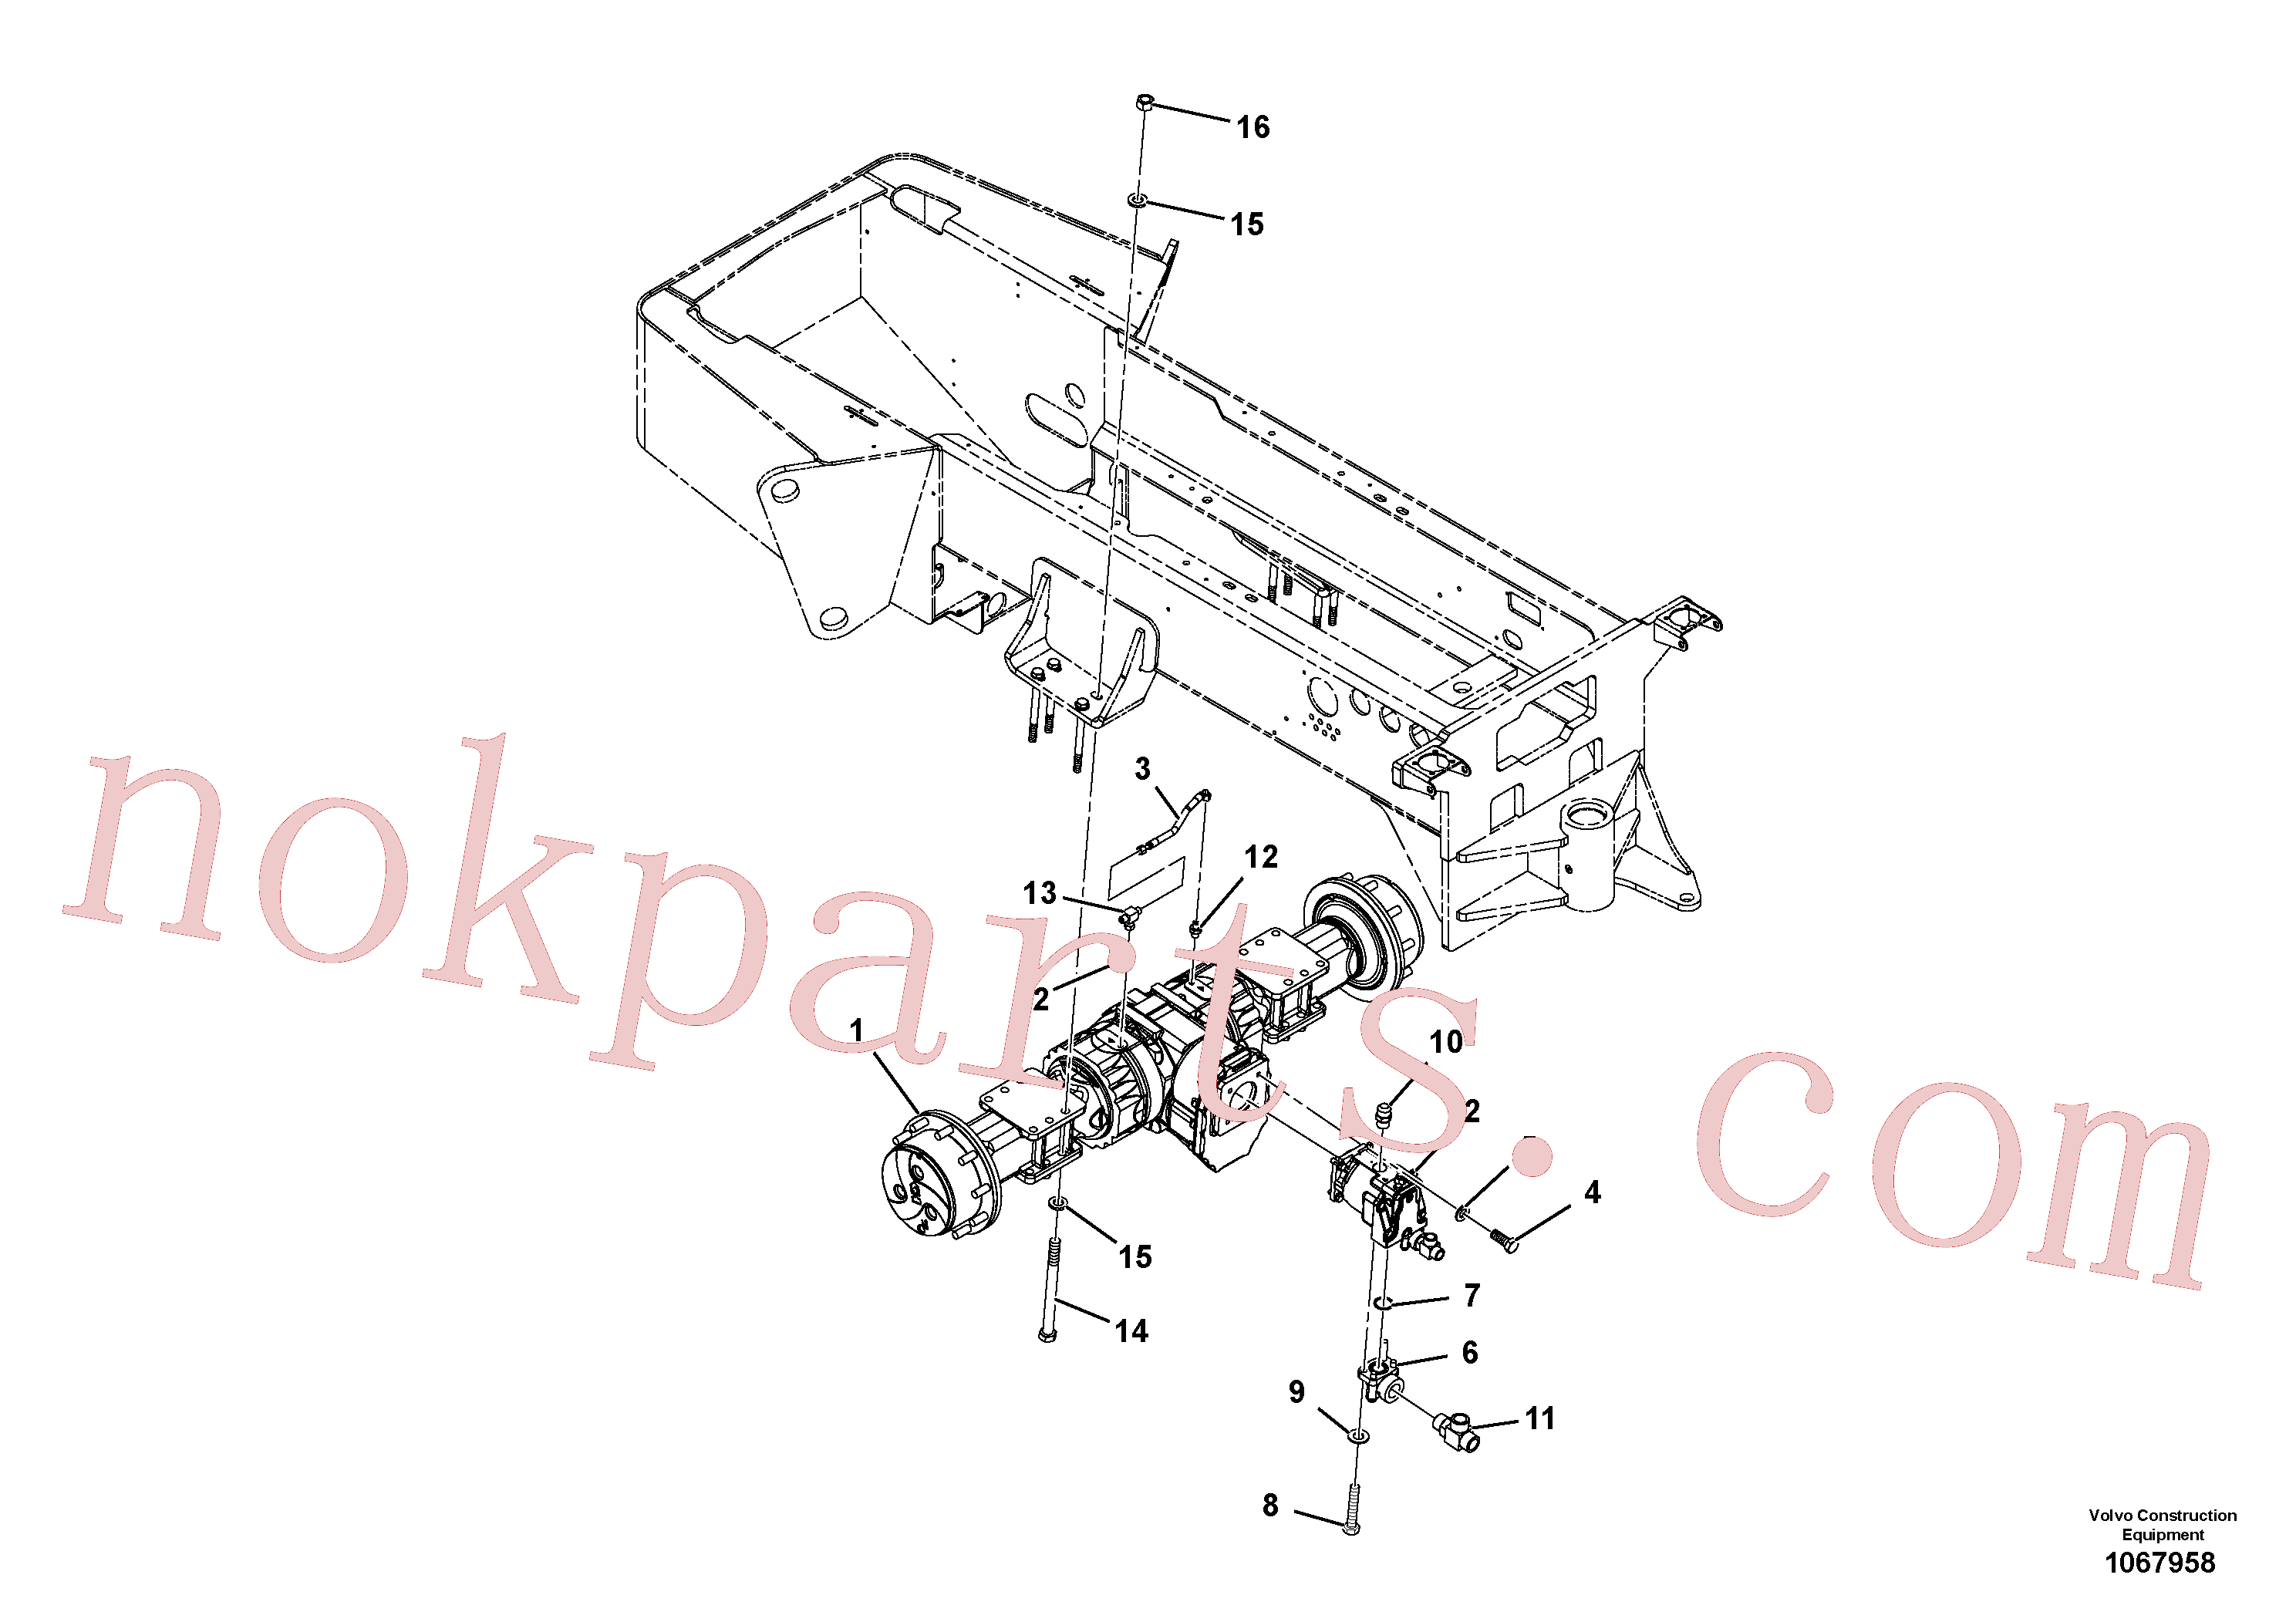 RM96703665 for Volvo Axle Installation(1067958 assembly)